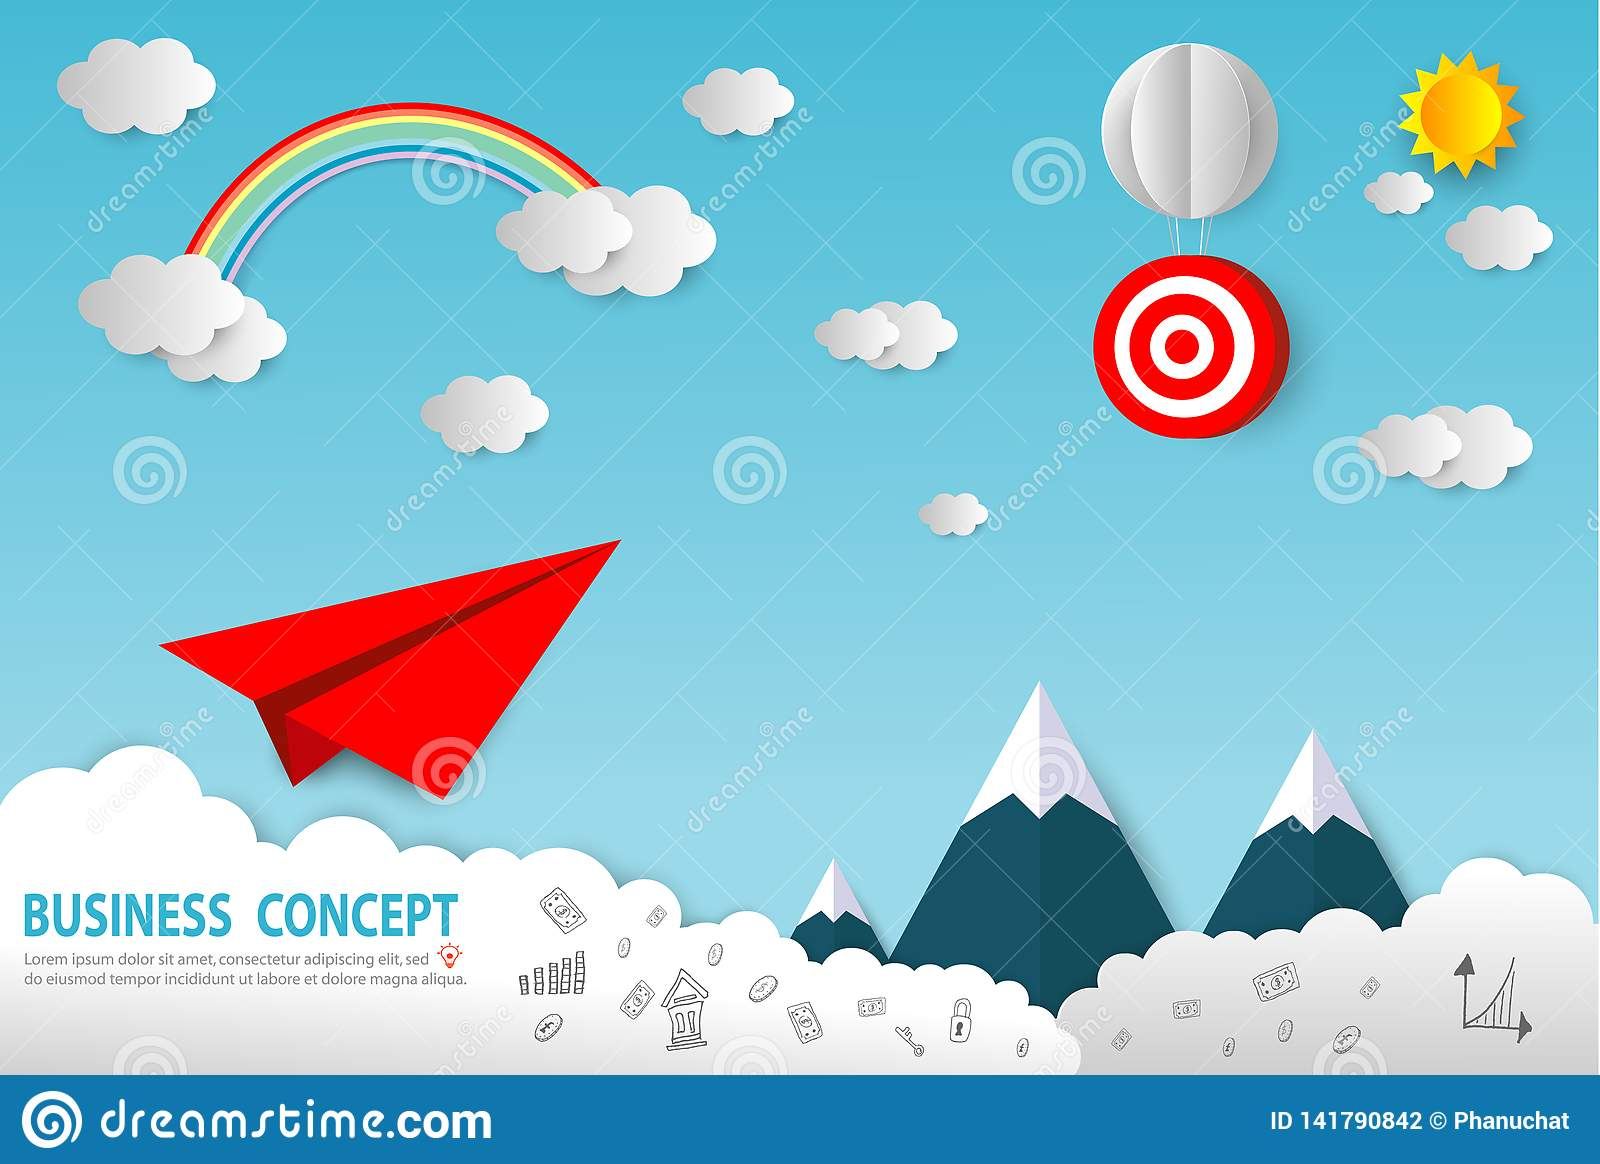 Paper Art Business Concept With Cloud And Sun Paper Plane Flying On Sky Design Business Startup Concept Leadership Creative Stock Vector Illustration Of City Flight 141790842